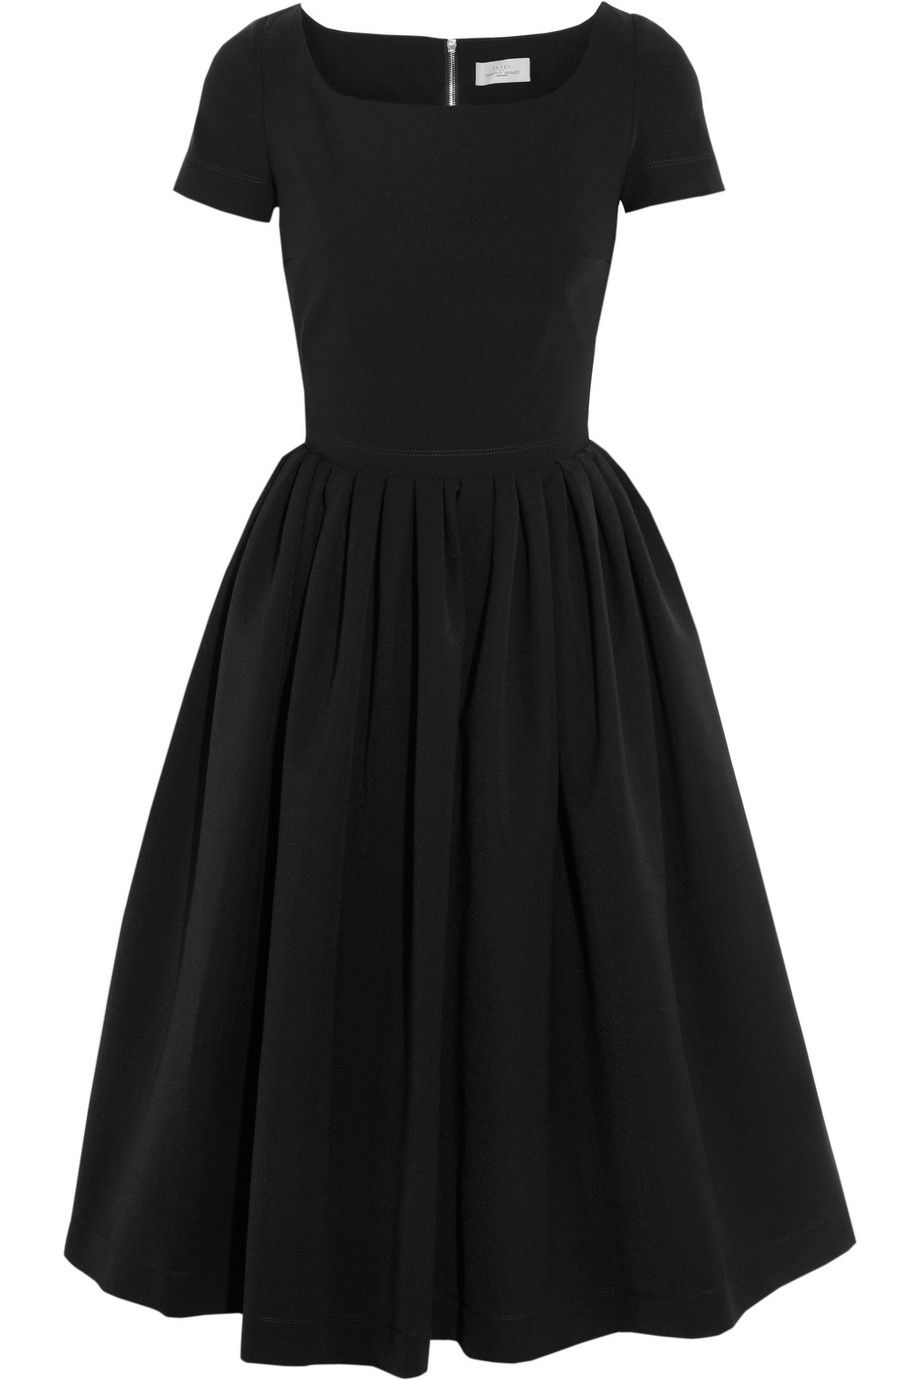 Wedding Simple Black Dress preen by thornton bregazzi everly stretch crepe dress net a classic black simple little dresses modest outfits fashion i